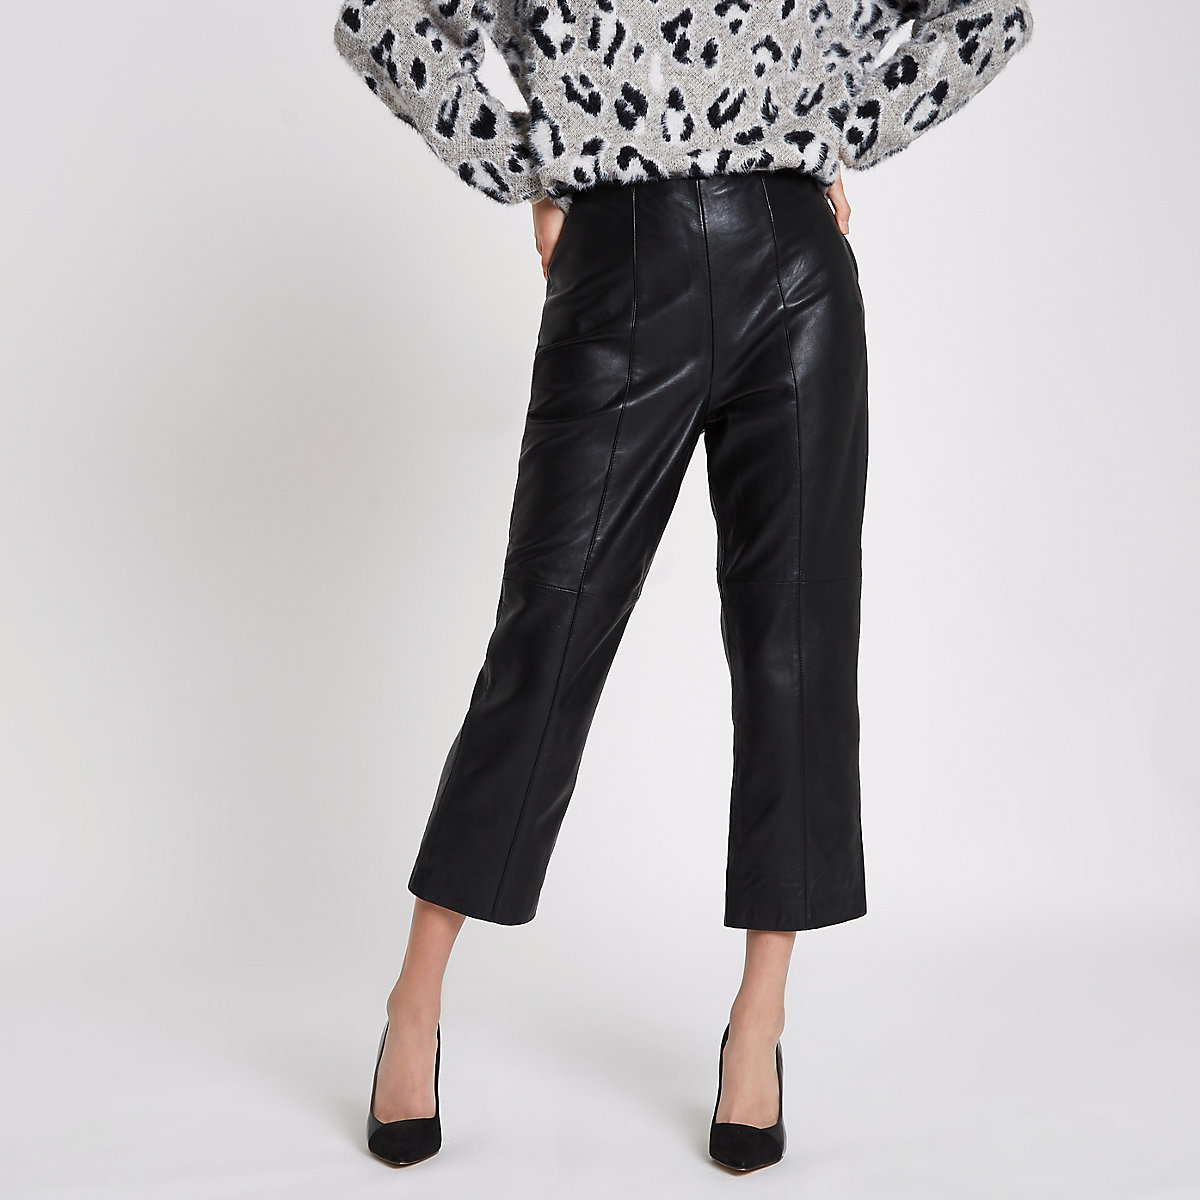 Black leather flared cropped pants